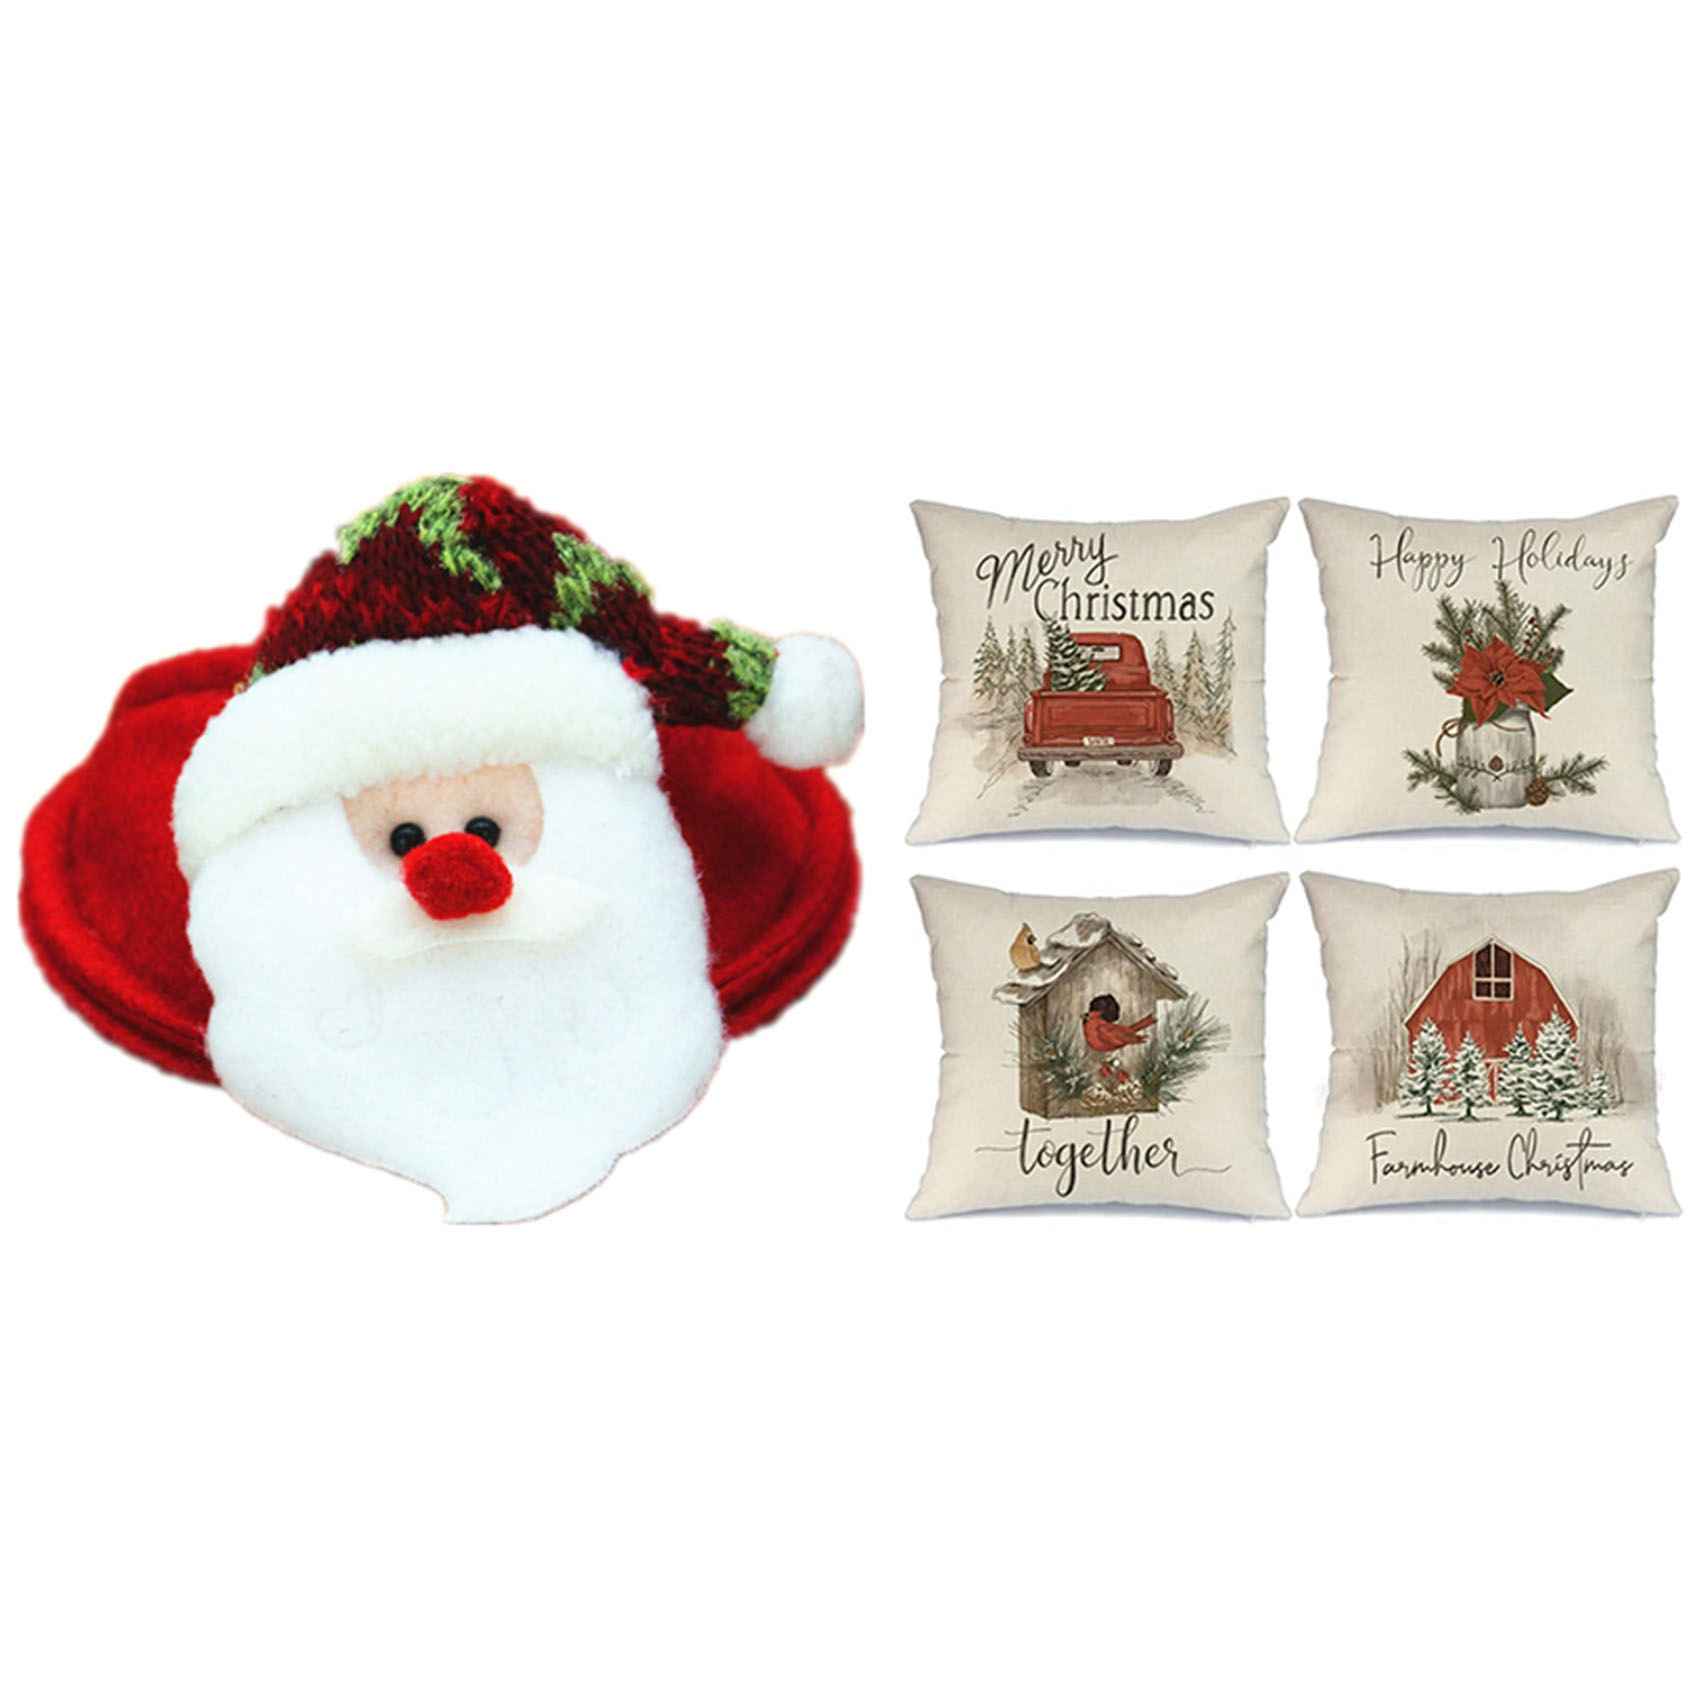 Coaster Christmas 2021 Flyeer 2021 Christmas Coasters Christmas Decorations Table Mats Christmas Pillow Covers Red Barn Truck Bird Farmhouse Buy Sell Online Best Prices In Srilanka Daraz Lk